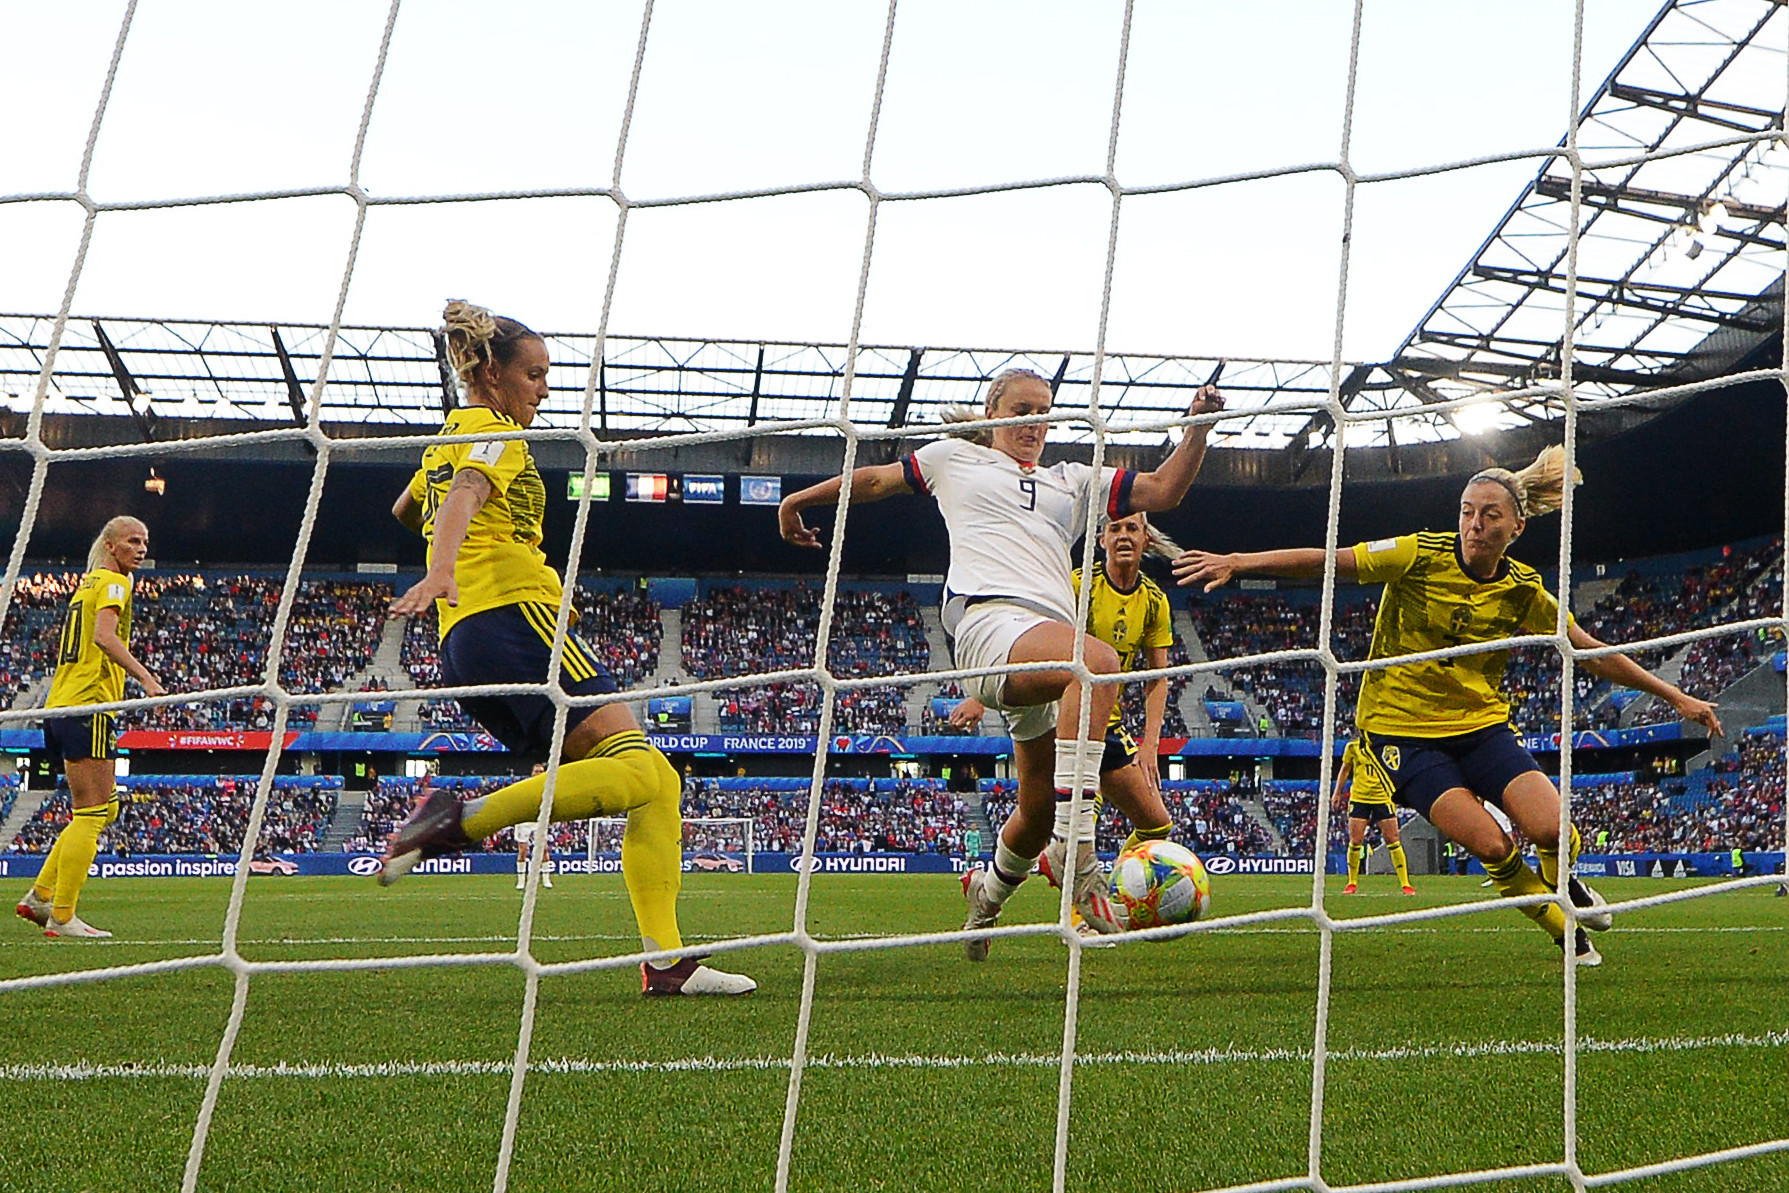 FIFA Women's World Cup group stage ends as United States rack up another victory